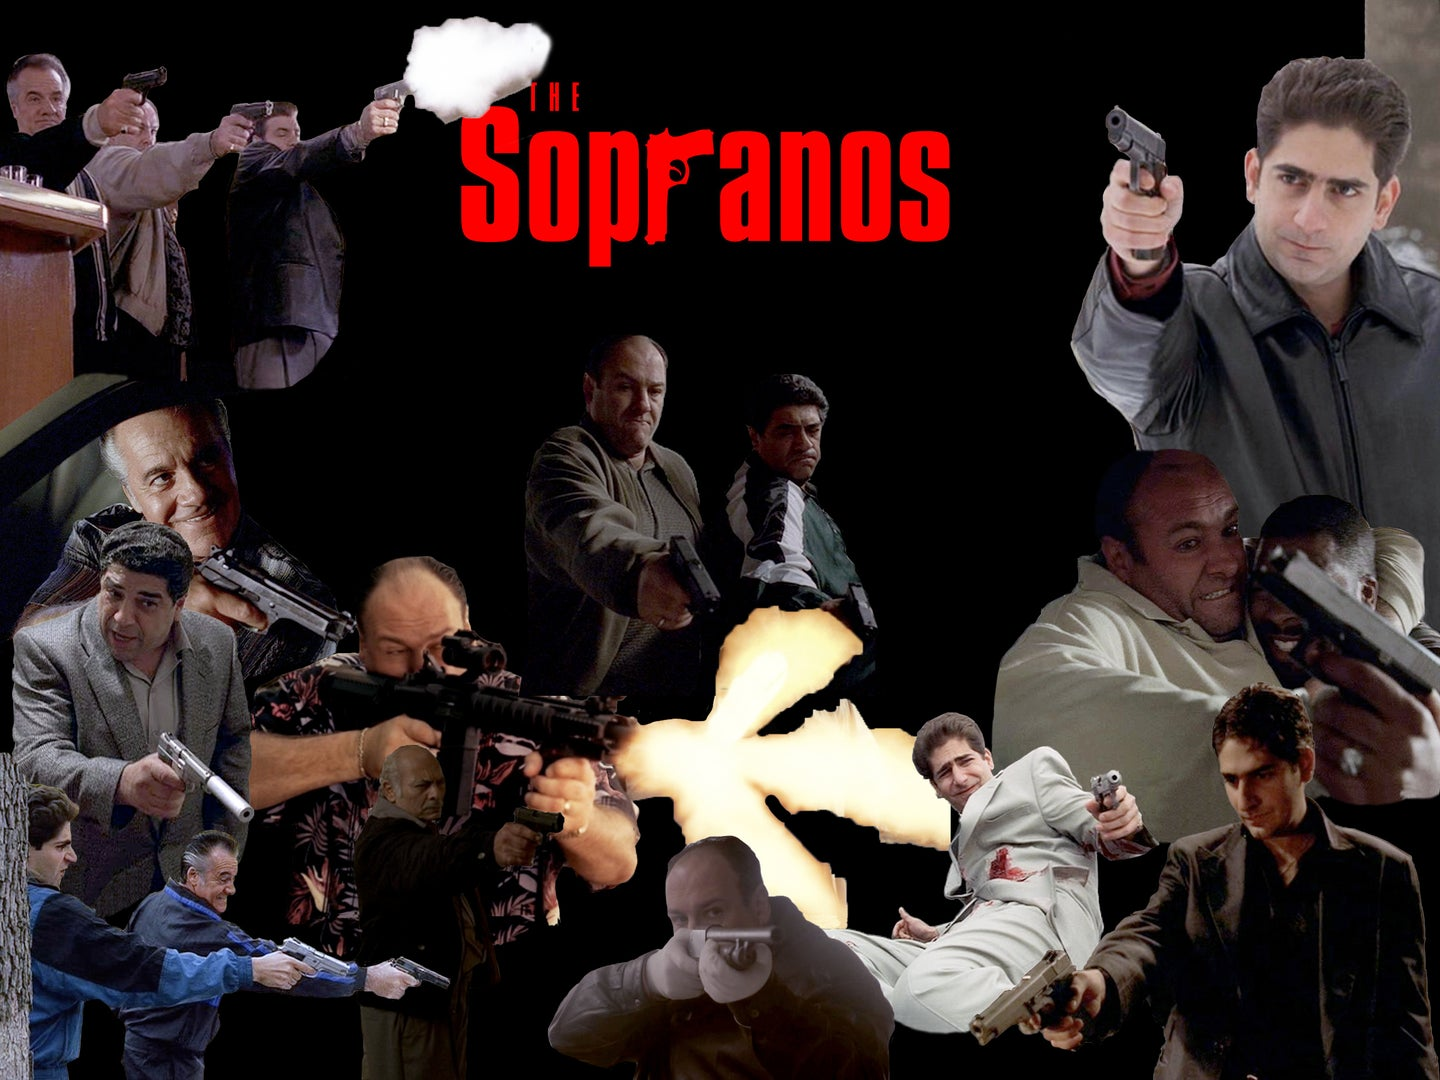 <i>The Sopranos</i> aired from 1999 - 2007 on HBO and was the cable networks first smash success show, leading to an era of original shows on premium channels. A prequel to the show, <i>The Many Saints of Newark</i> will be released in September.